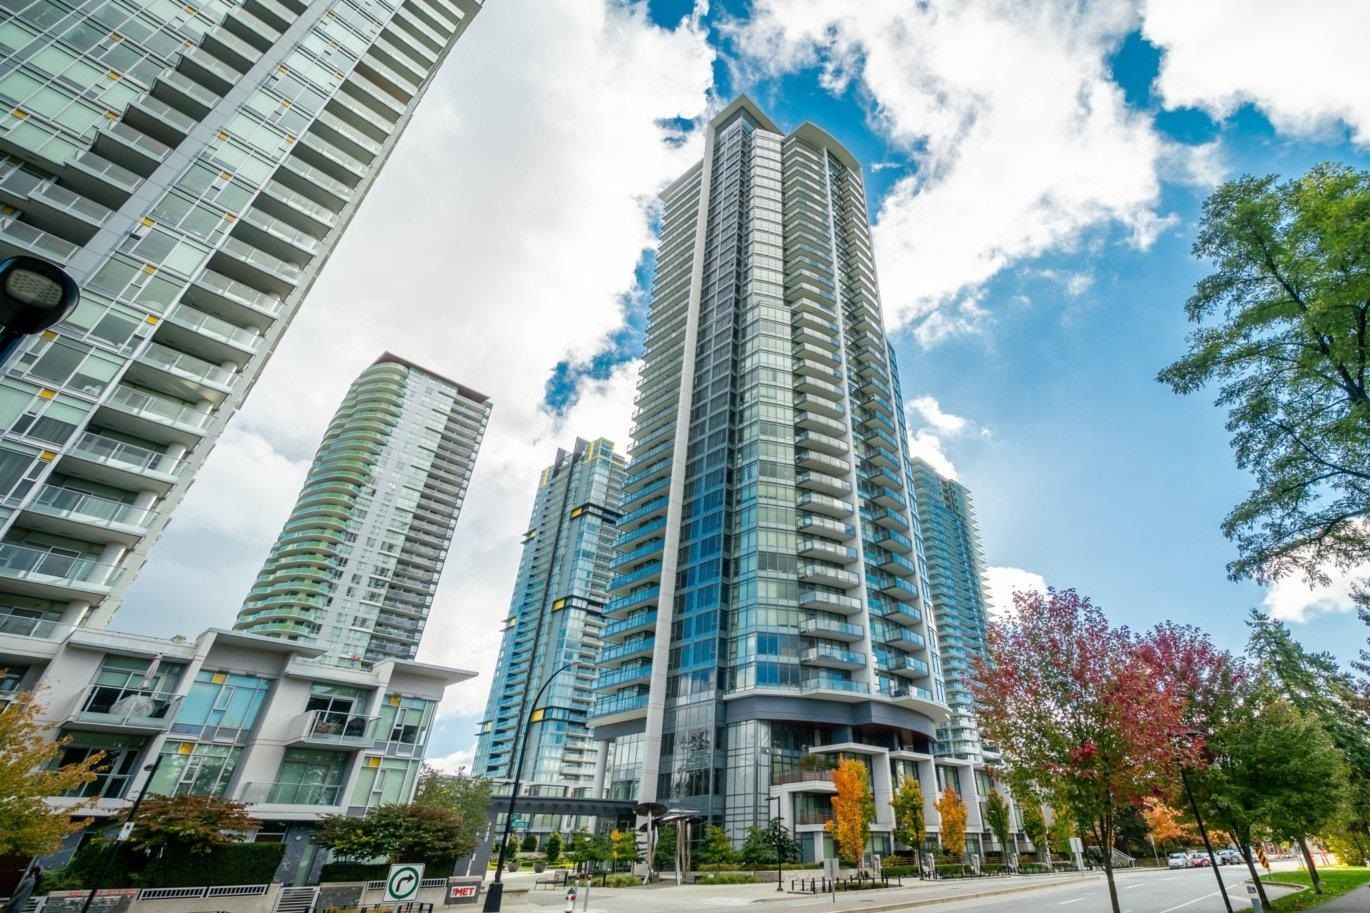 """Main Photo: 3008 4900 LENNOX Lane in Burnaby: Metrotown Condo for sale in """"The Park"""" (Burnaby South)  : MLS®# R2625122"""